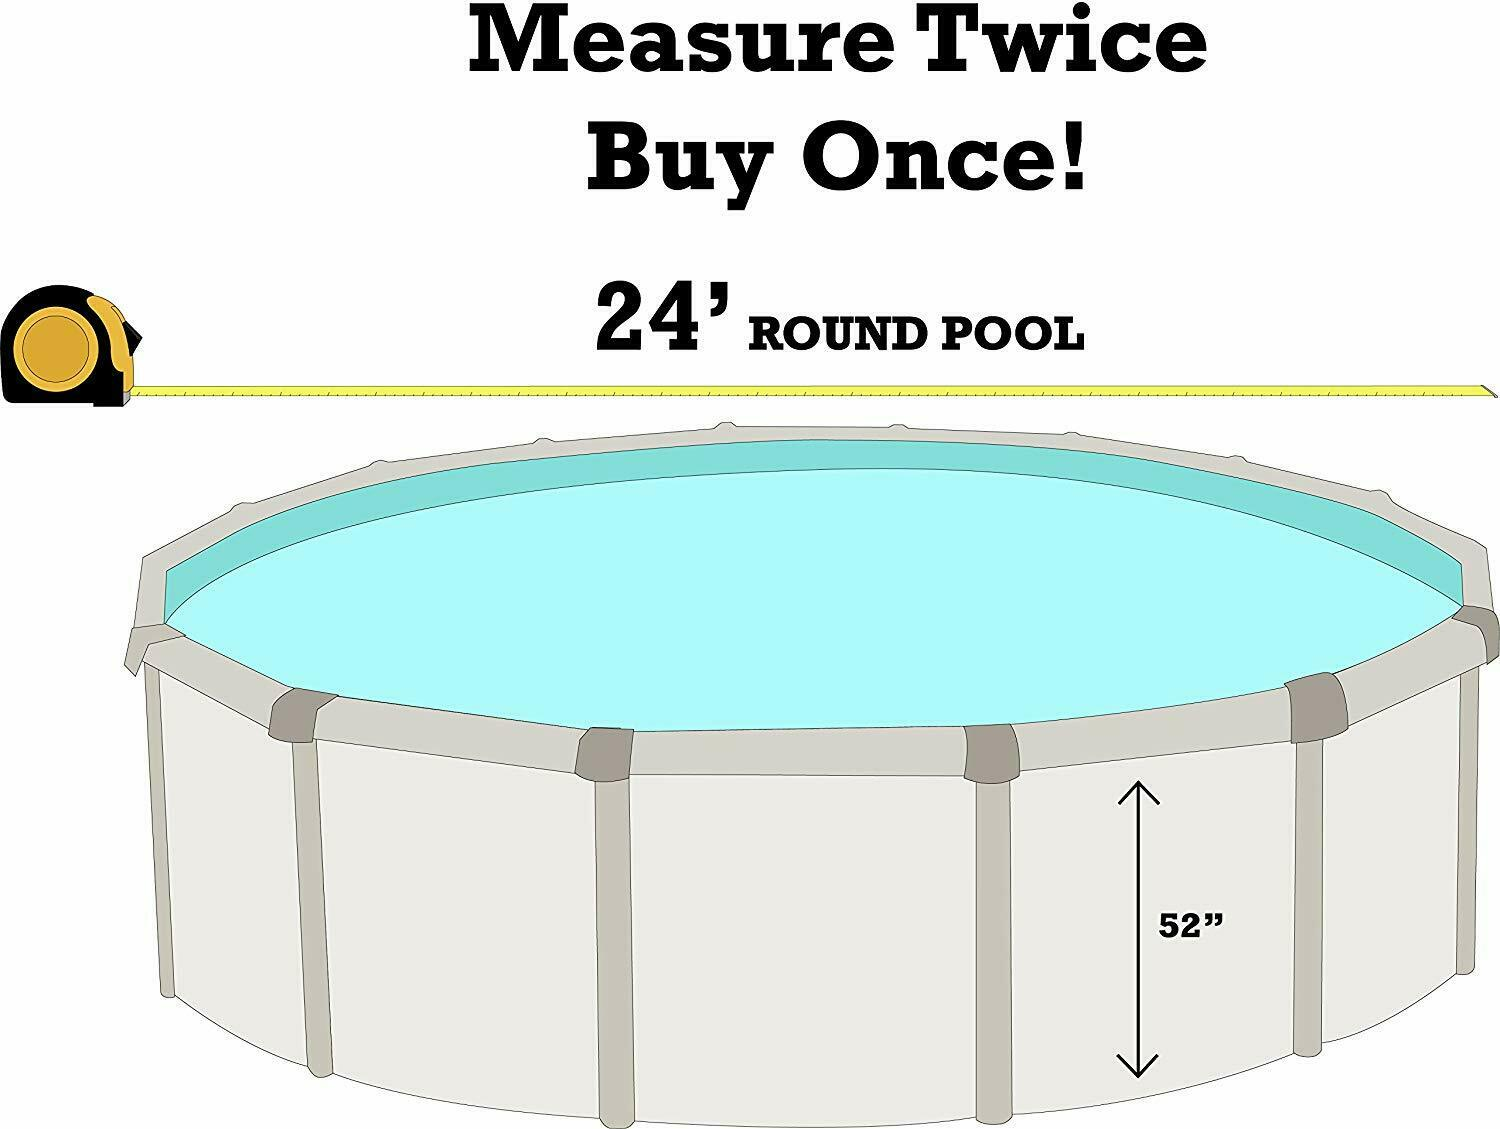 Cabana Boy HD Designs and Vibrant Color Options Round Overlap Above Ground Swimming Pool Liner 24 Foot Pool Liner 25 Gauge Durable Vinyl